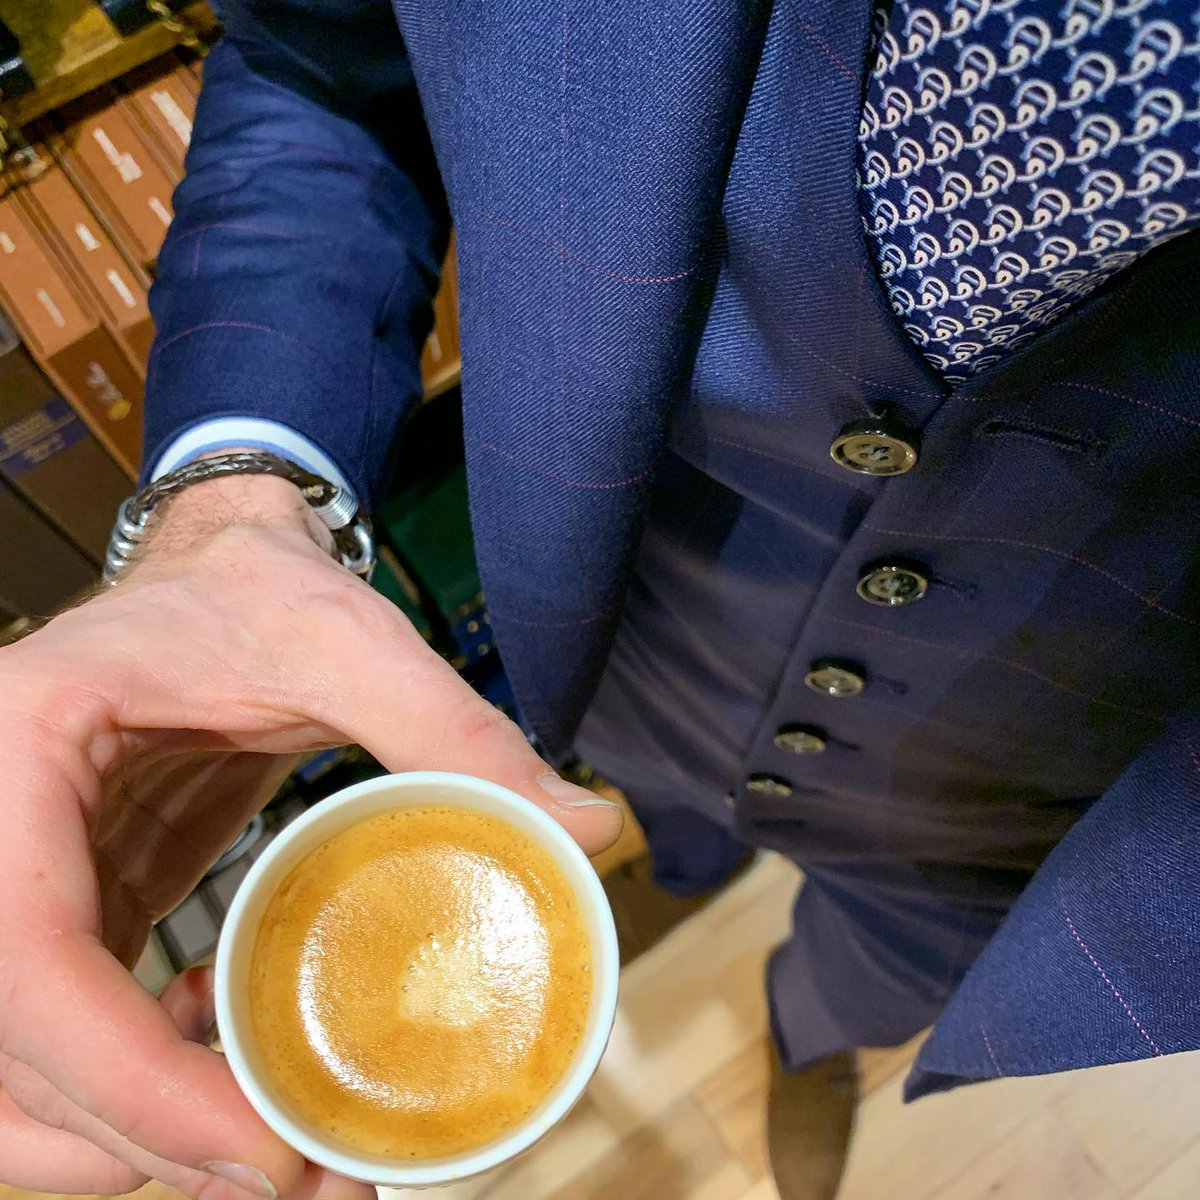 """""""Another day, another cup of coffee.""""#buongiorno #riseandshine #cafe #espresso #mensfashion #mensstyle #styleinspo #styleformen #fashionformen #fashion #suitstyle #altonlane #styleoftheday #mensweardaily #illy #pitti #scabal #customclothing #lovewhatyoudo #bespokepic.twitter.com/AMgZOP8U5o"""